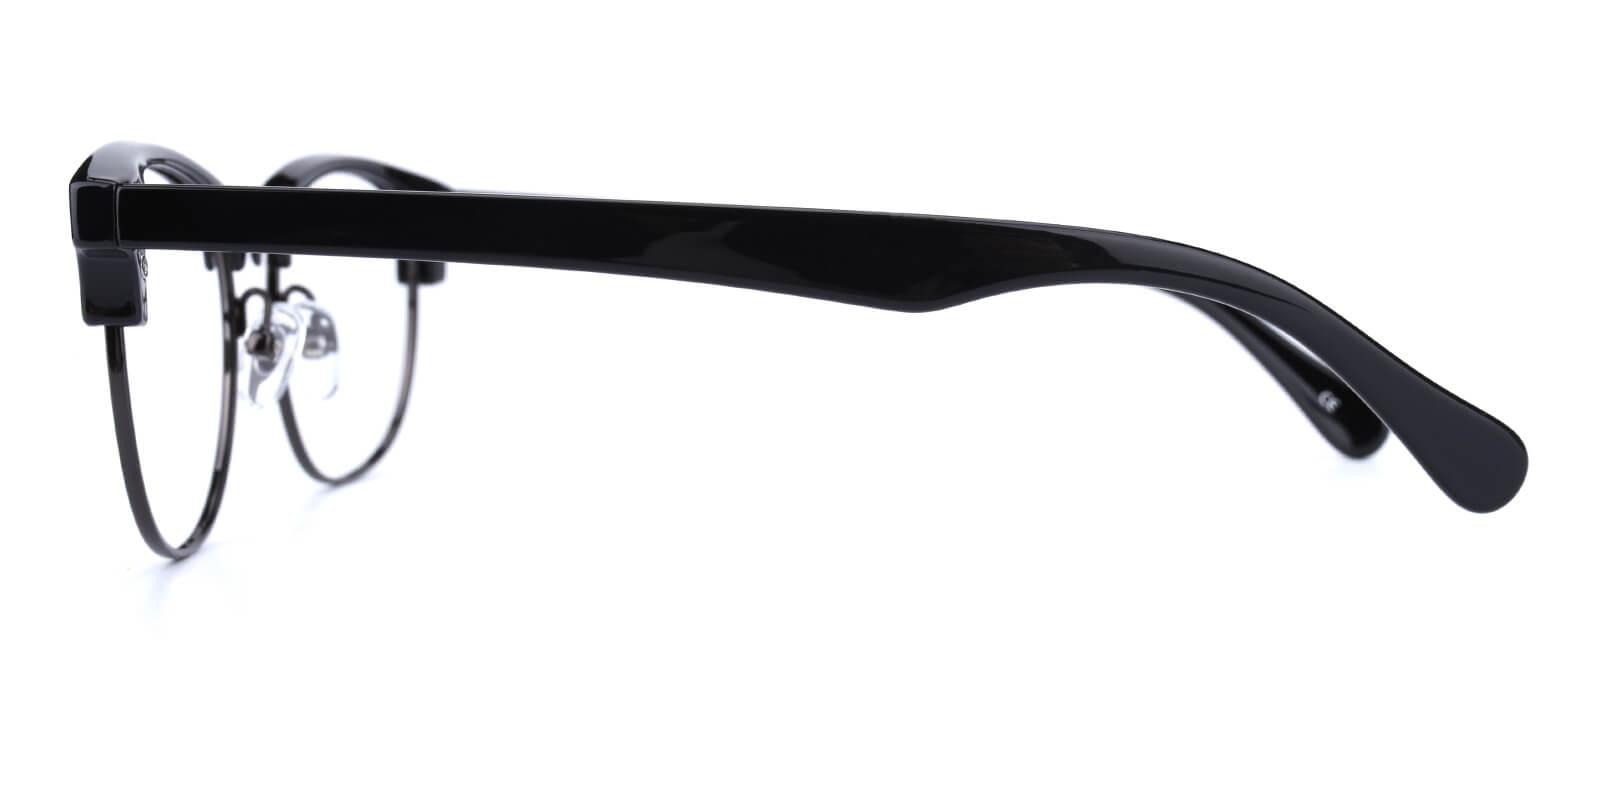 Ferrous-Black-Browline-Combination / Metal / Plastic-Eyeglasses-additional3